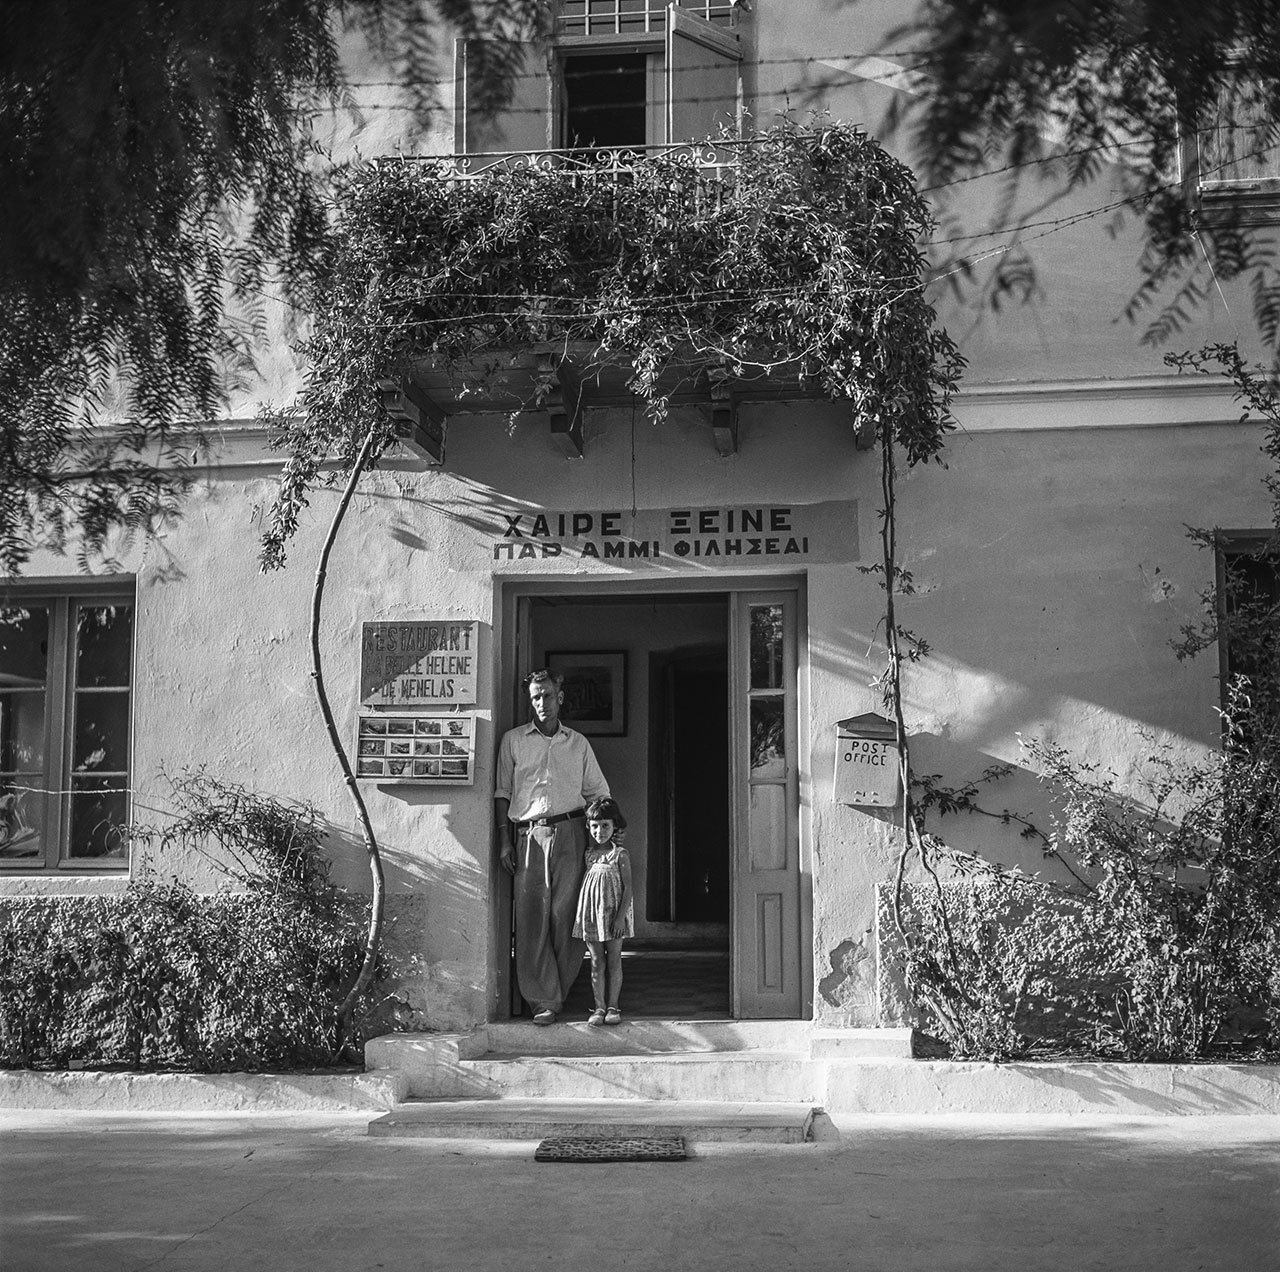 Mycenae 1955. Agamemnon and Panagoula at the Hotel Belle Helene. Photo © Robert McCabe.